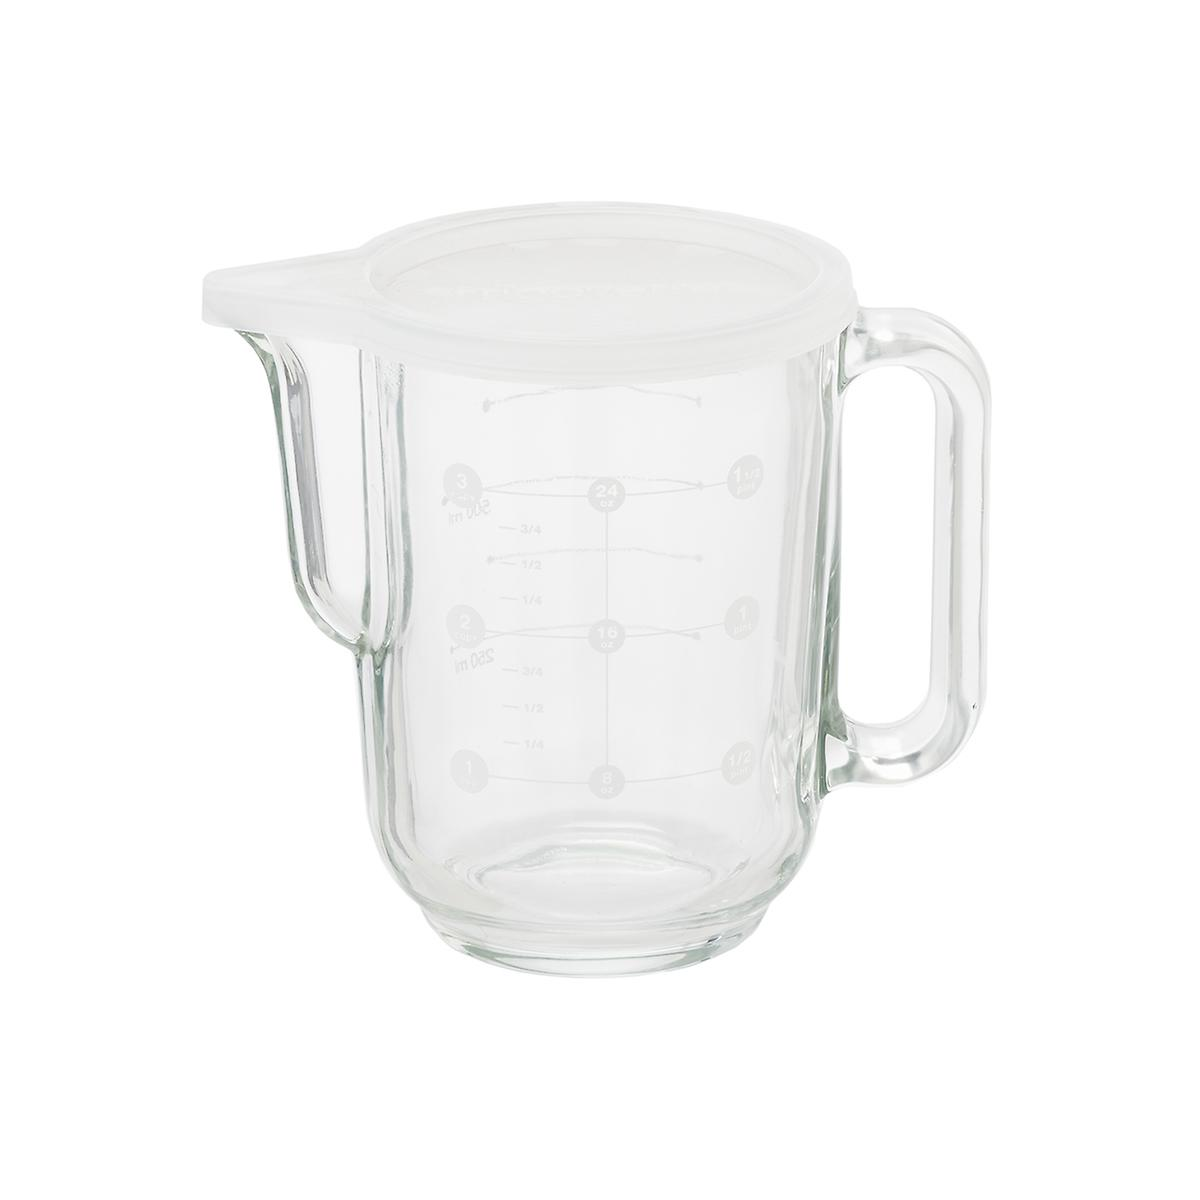 Measuring Jug with Lid